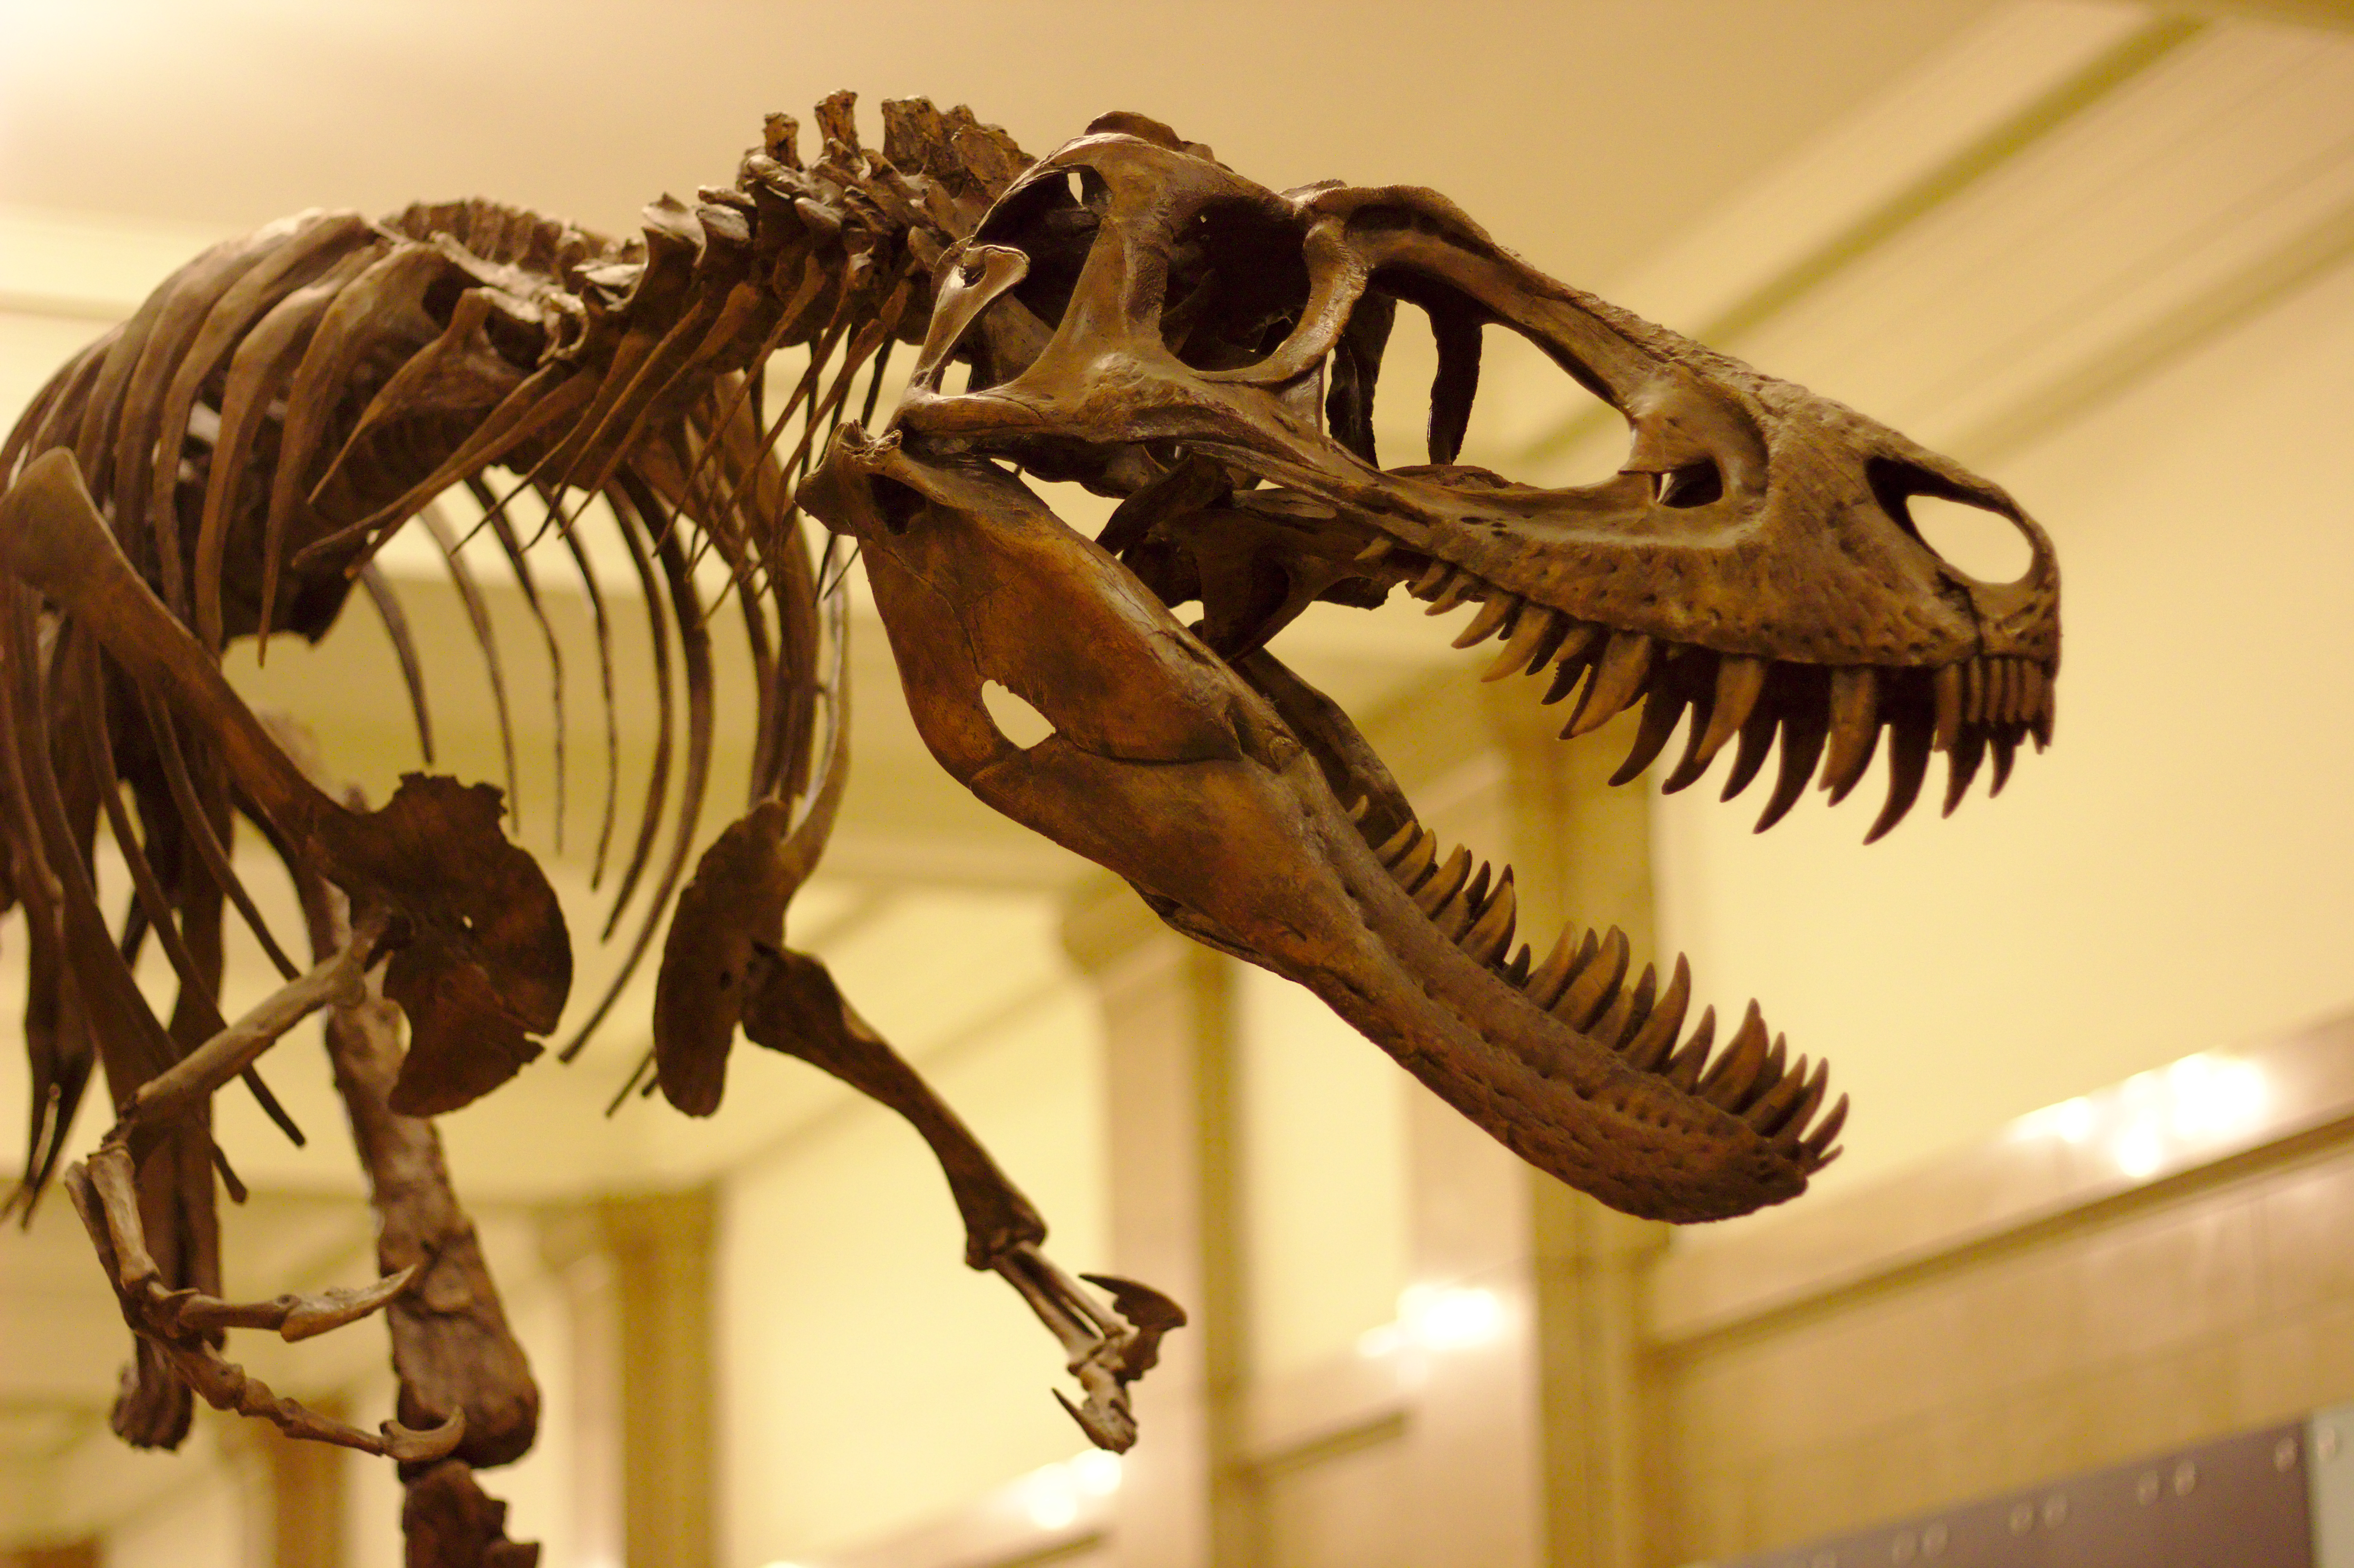 https://upload.wikimedia.org/wikipedia/commons/9/9a/Juvenile_T._Rex_at_Carnegie_Museum_of_Natural_History%2C_2013-12-14.jpg